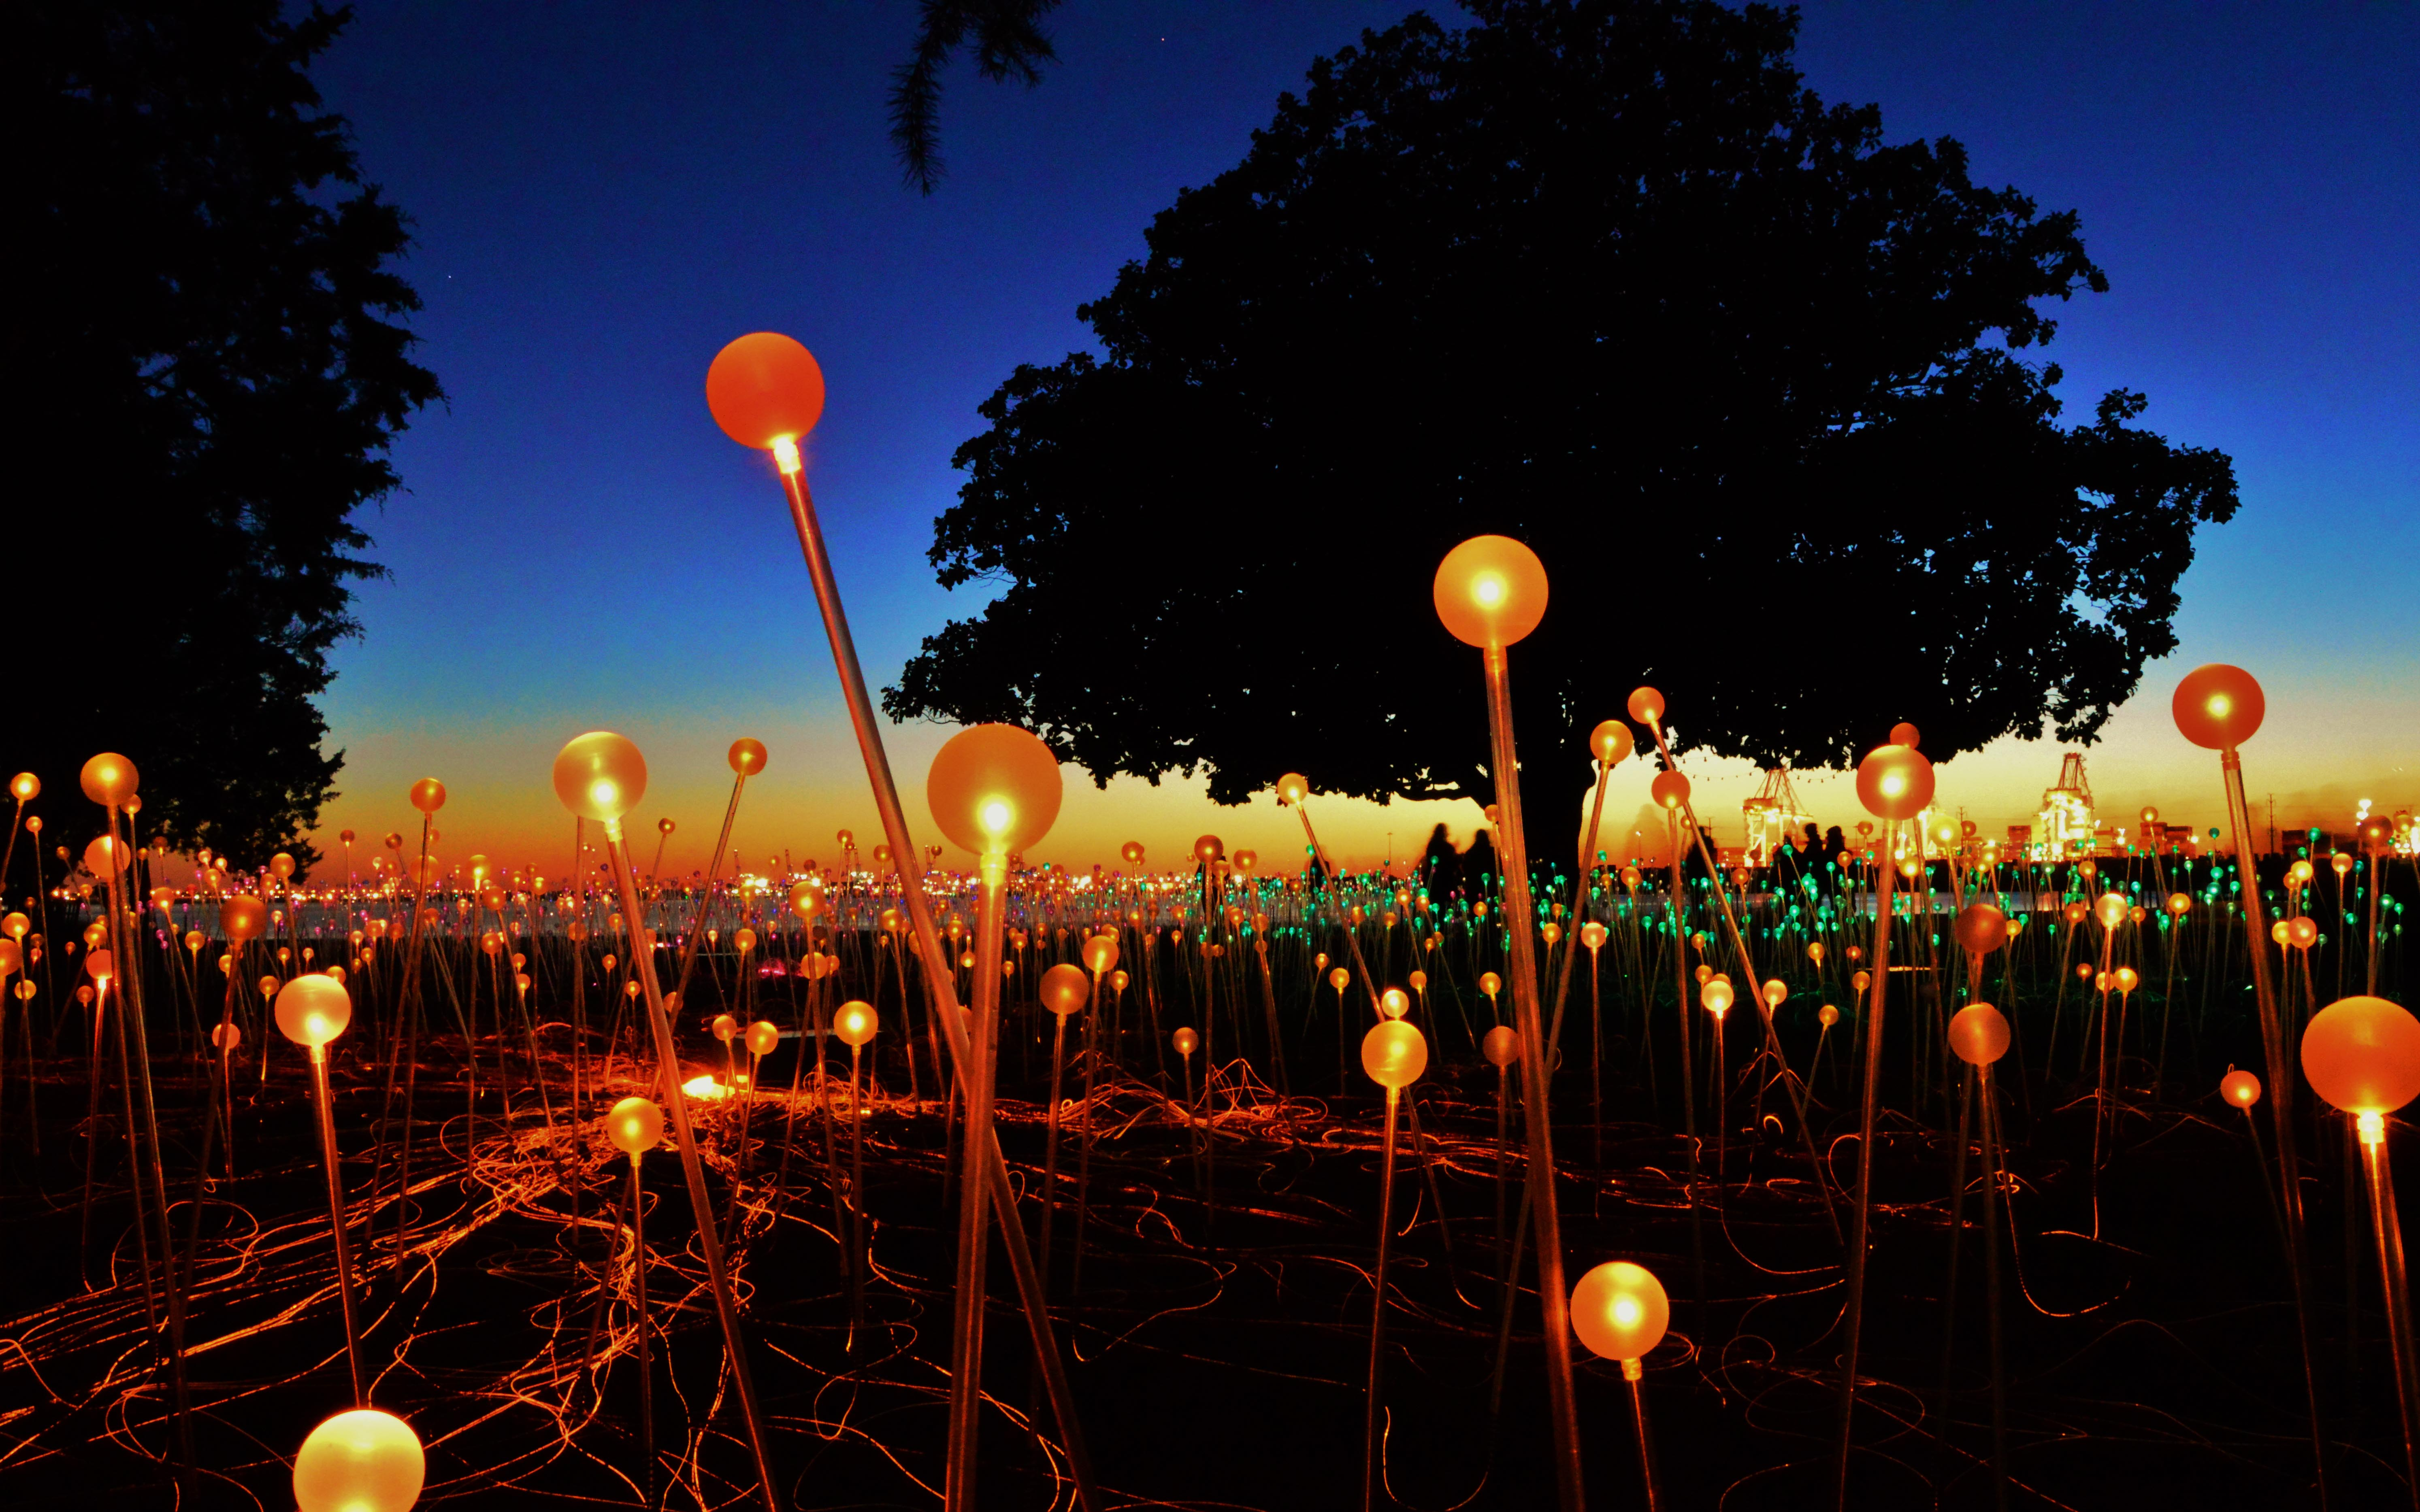 bruce_munro_s__field_of_lights___norfolk__va_by_schaex-d8devrw